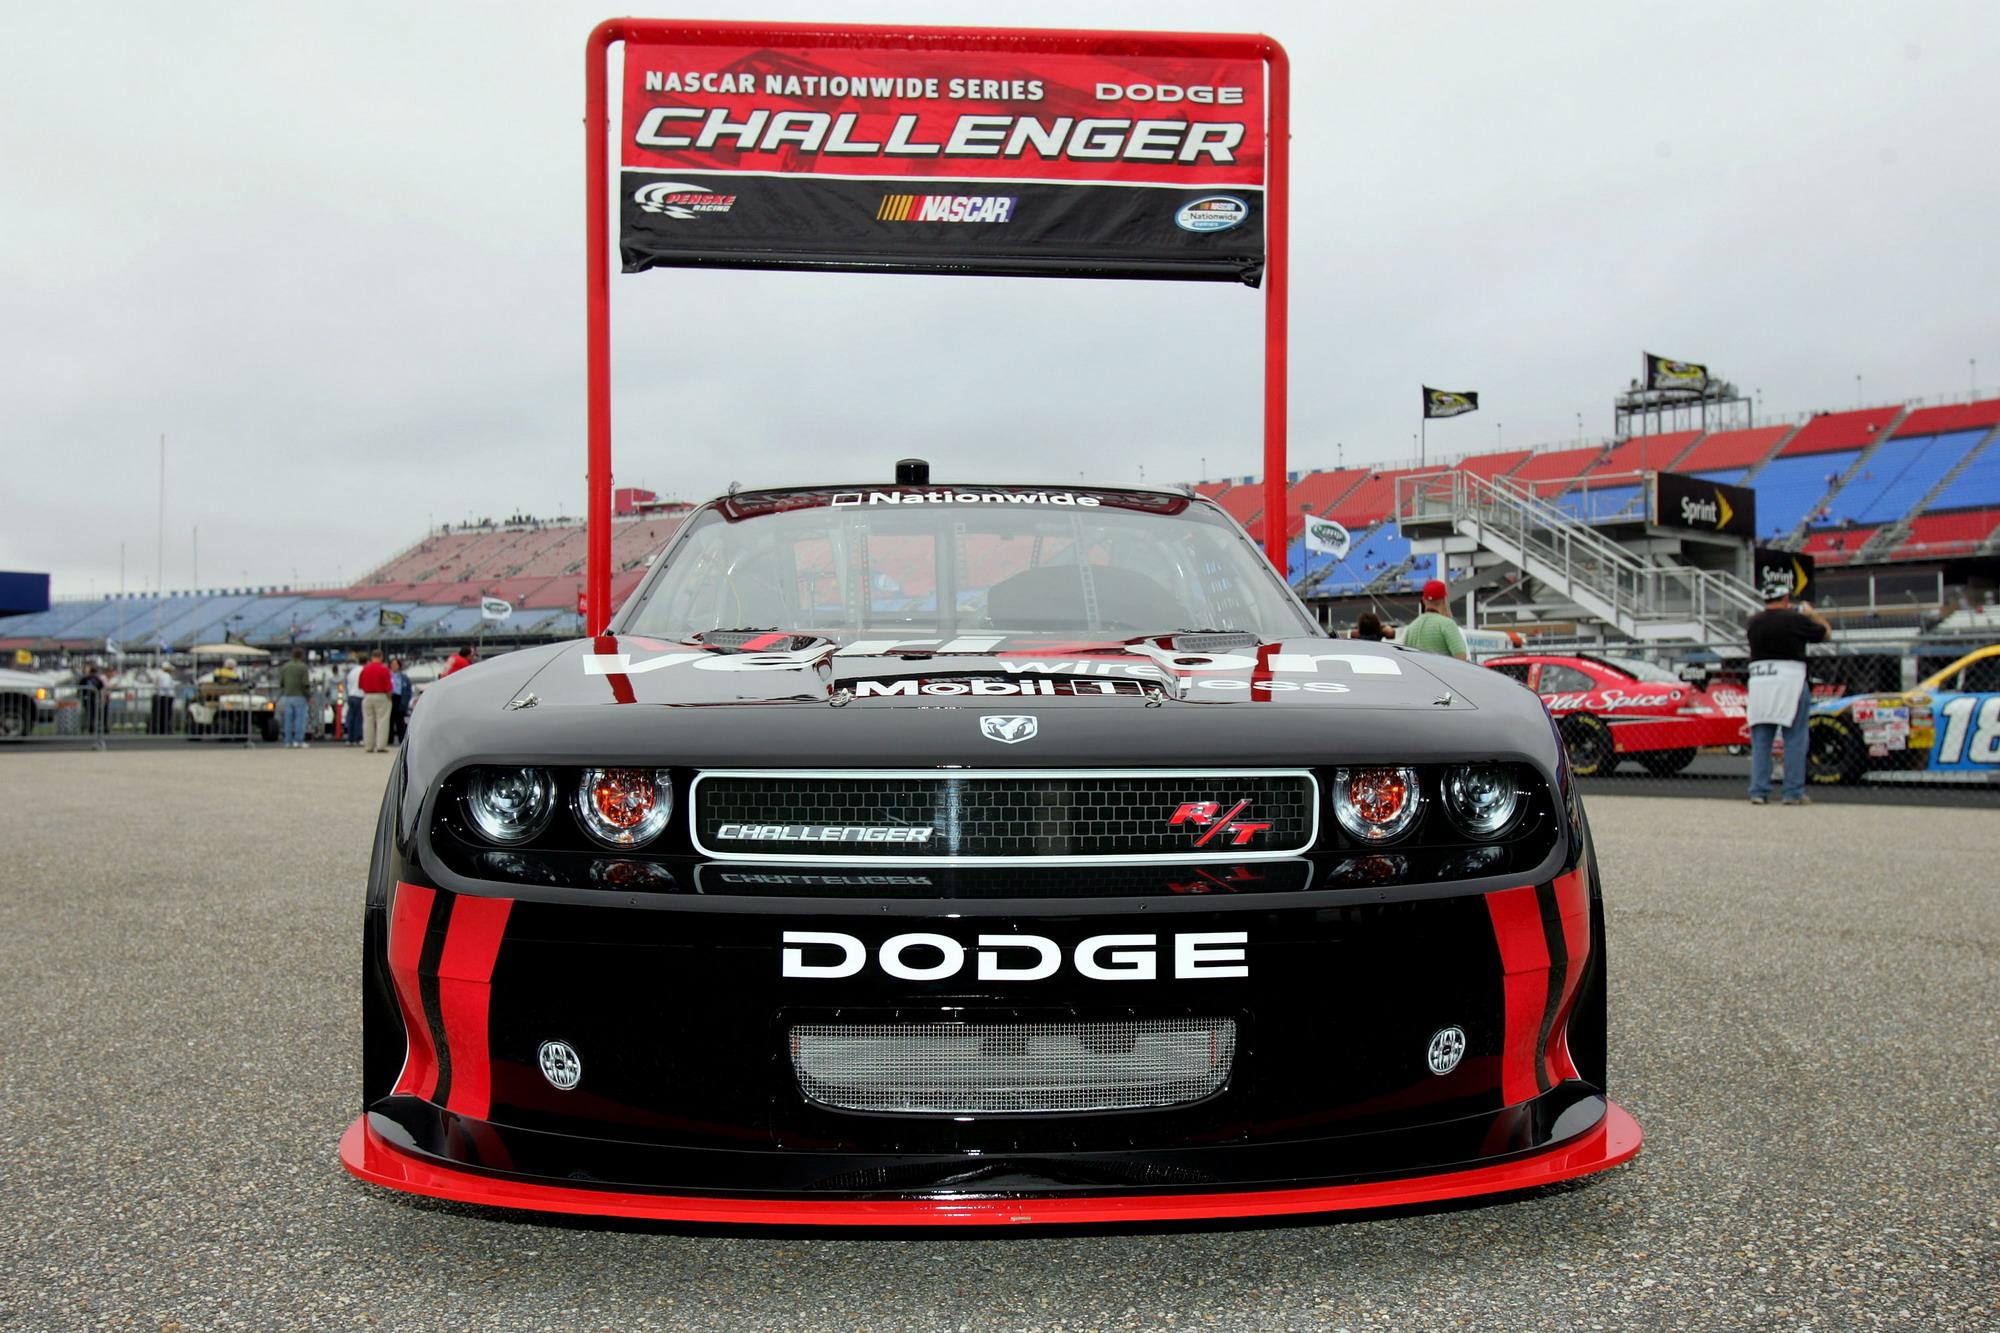 Richard Petty Motorsports >> 2009 Dodge Challenger For NASCAR Nationwide Series | Top Speed